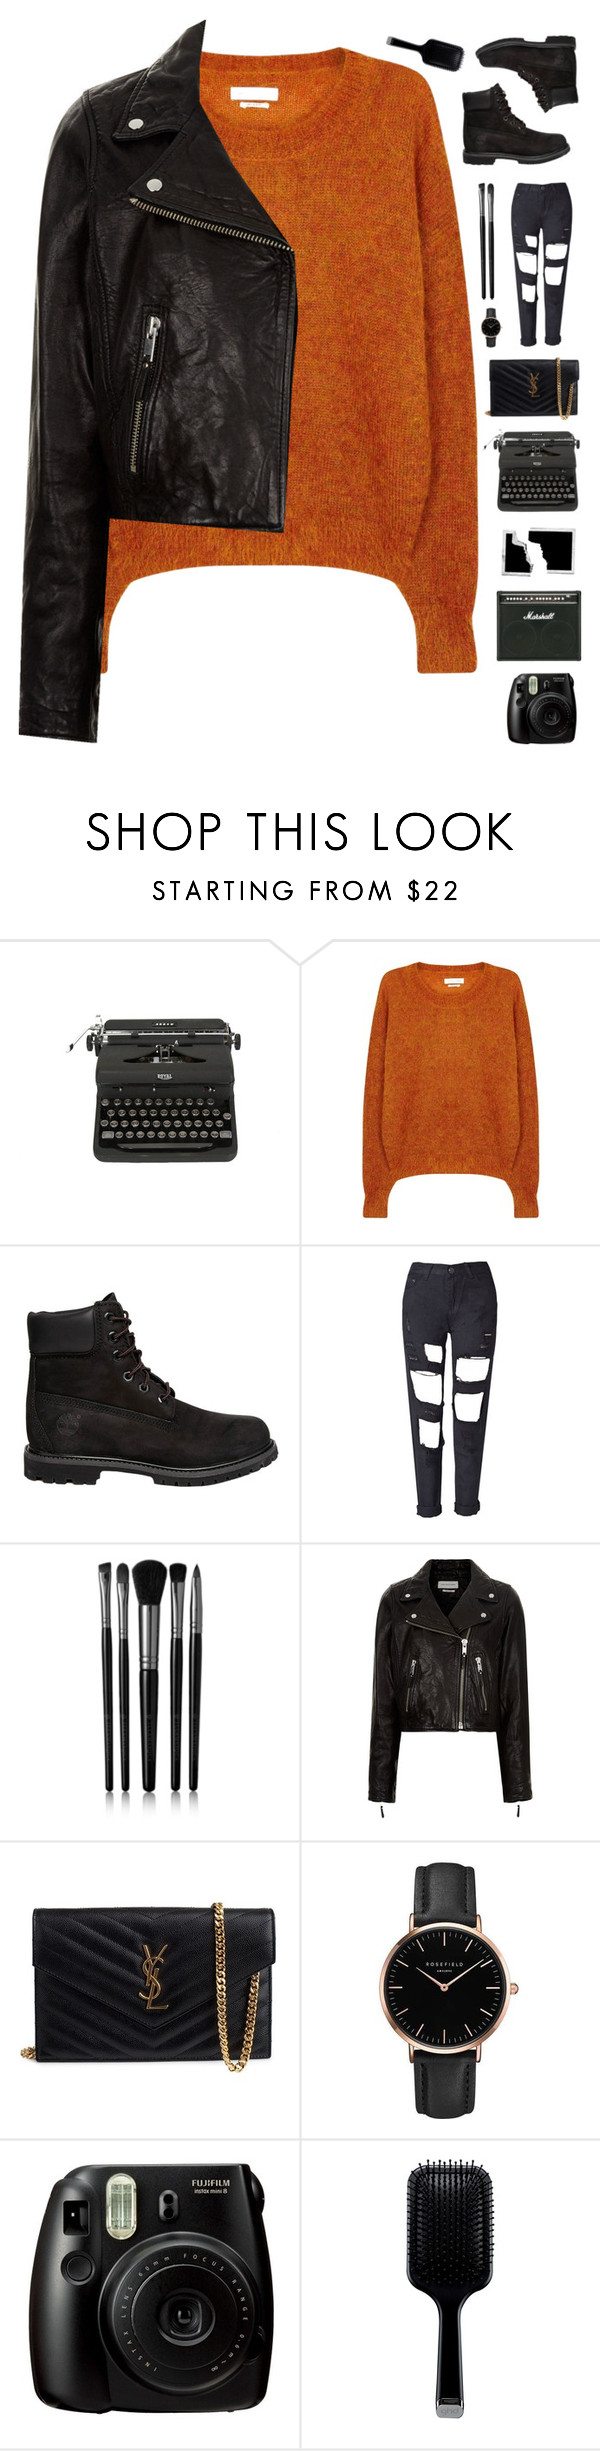 """Orange and Black"" by genesis129 on Polyvore featuring Étoile Isabel Marant, Timberland, Illamasqua, Yves Saint Laurent, Topshop, Fujifilm, GHD and vintage"